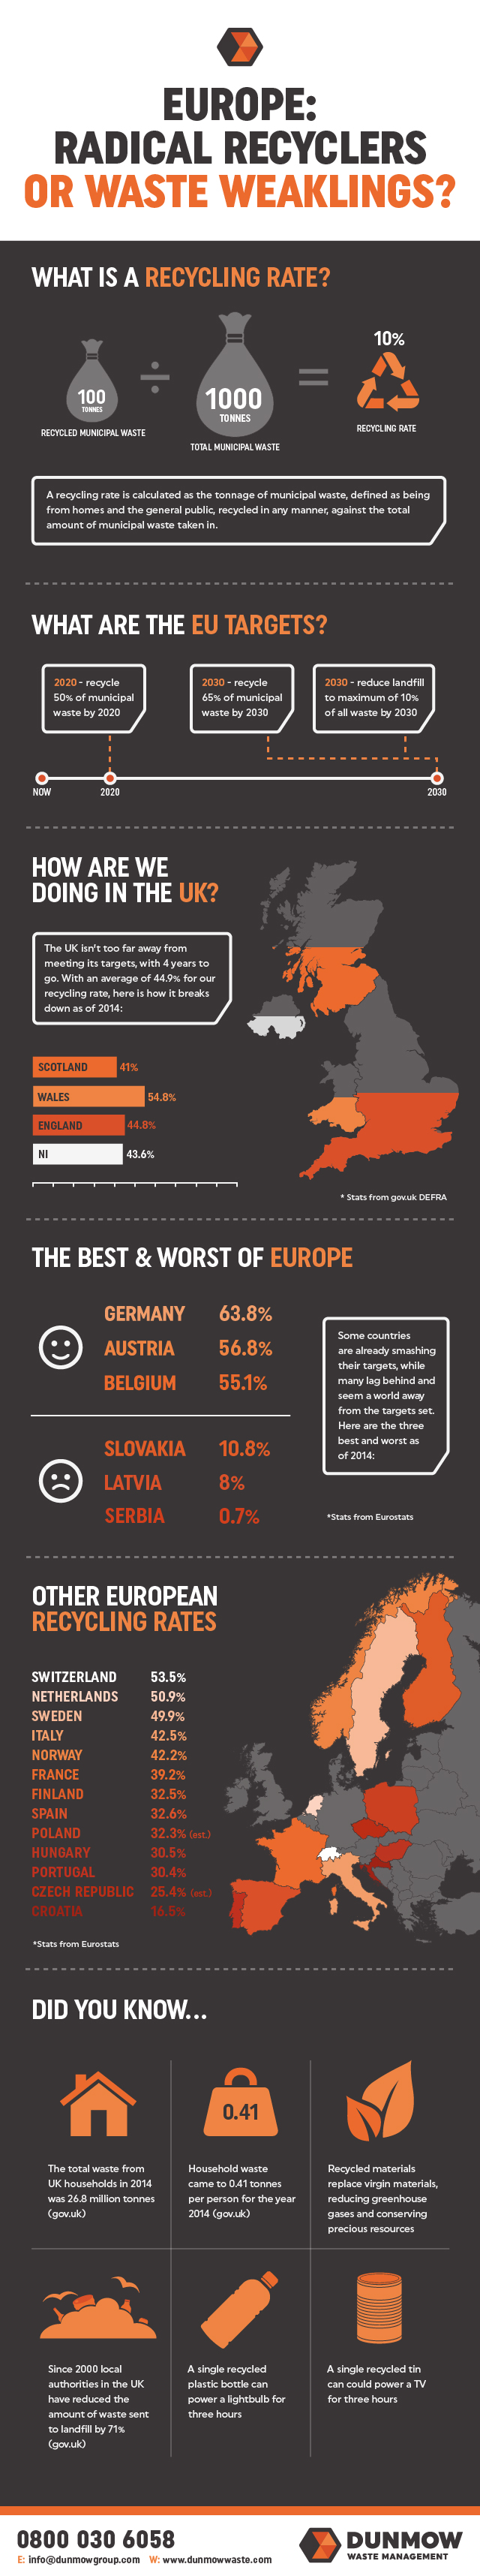 European-Recycling-Rates-Infographic-plaza